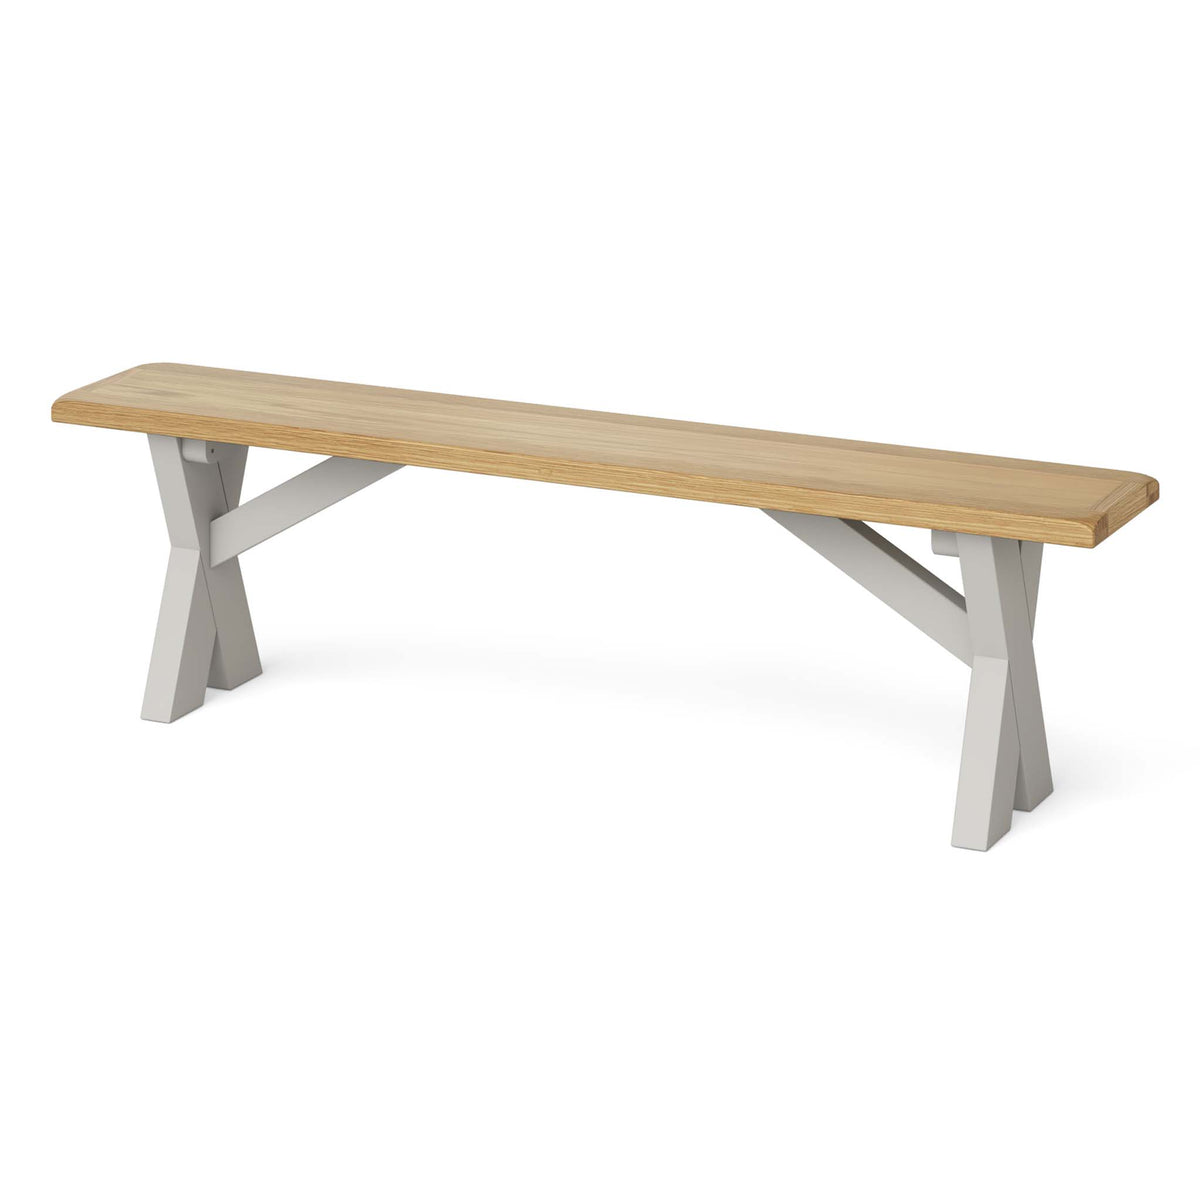 Lundy Grey Crossed Based Oak Topped Bench - Side view